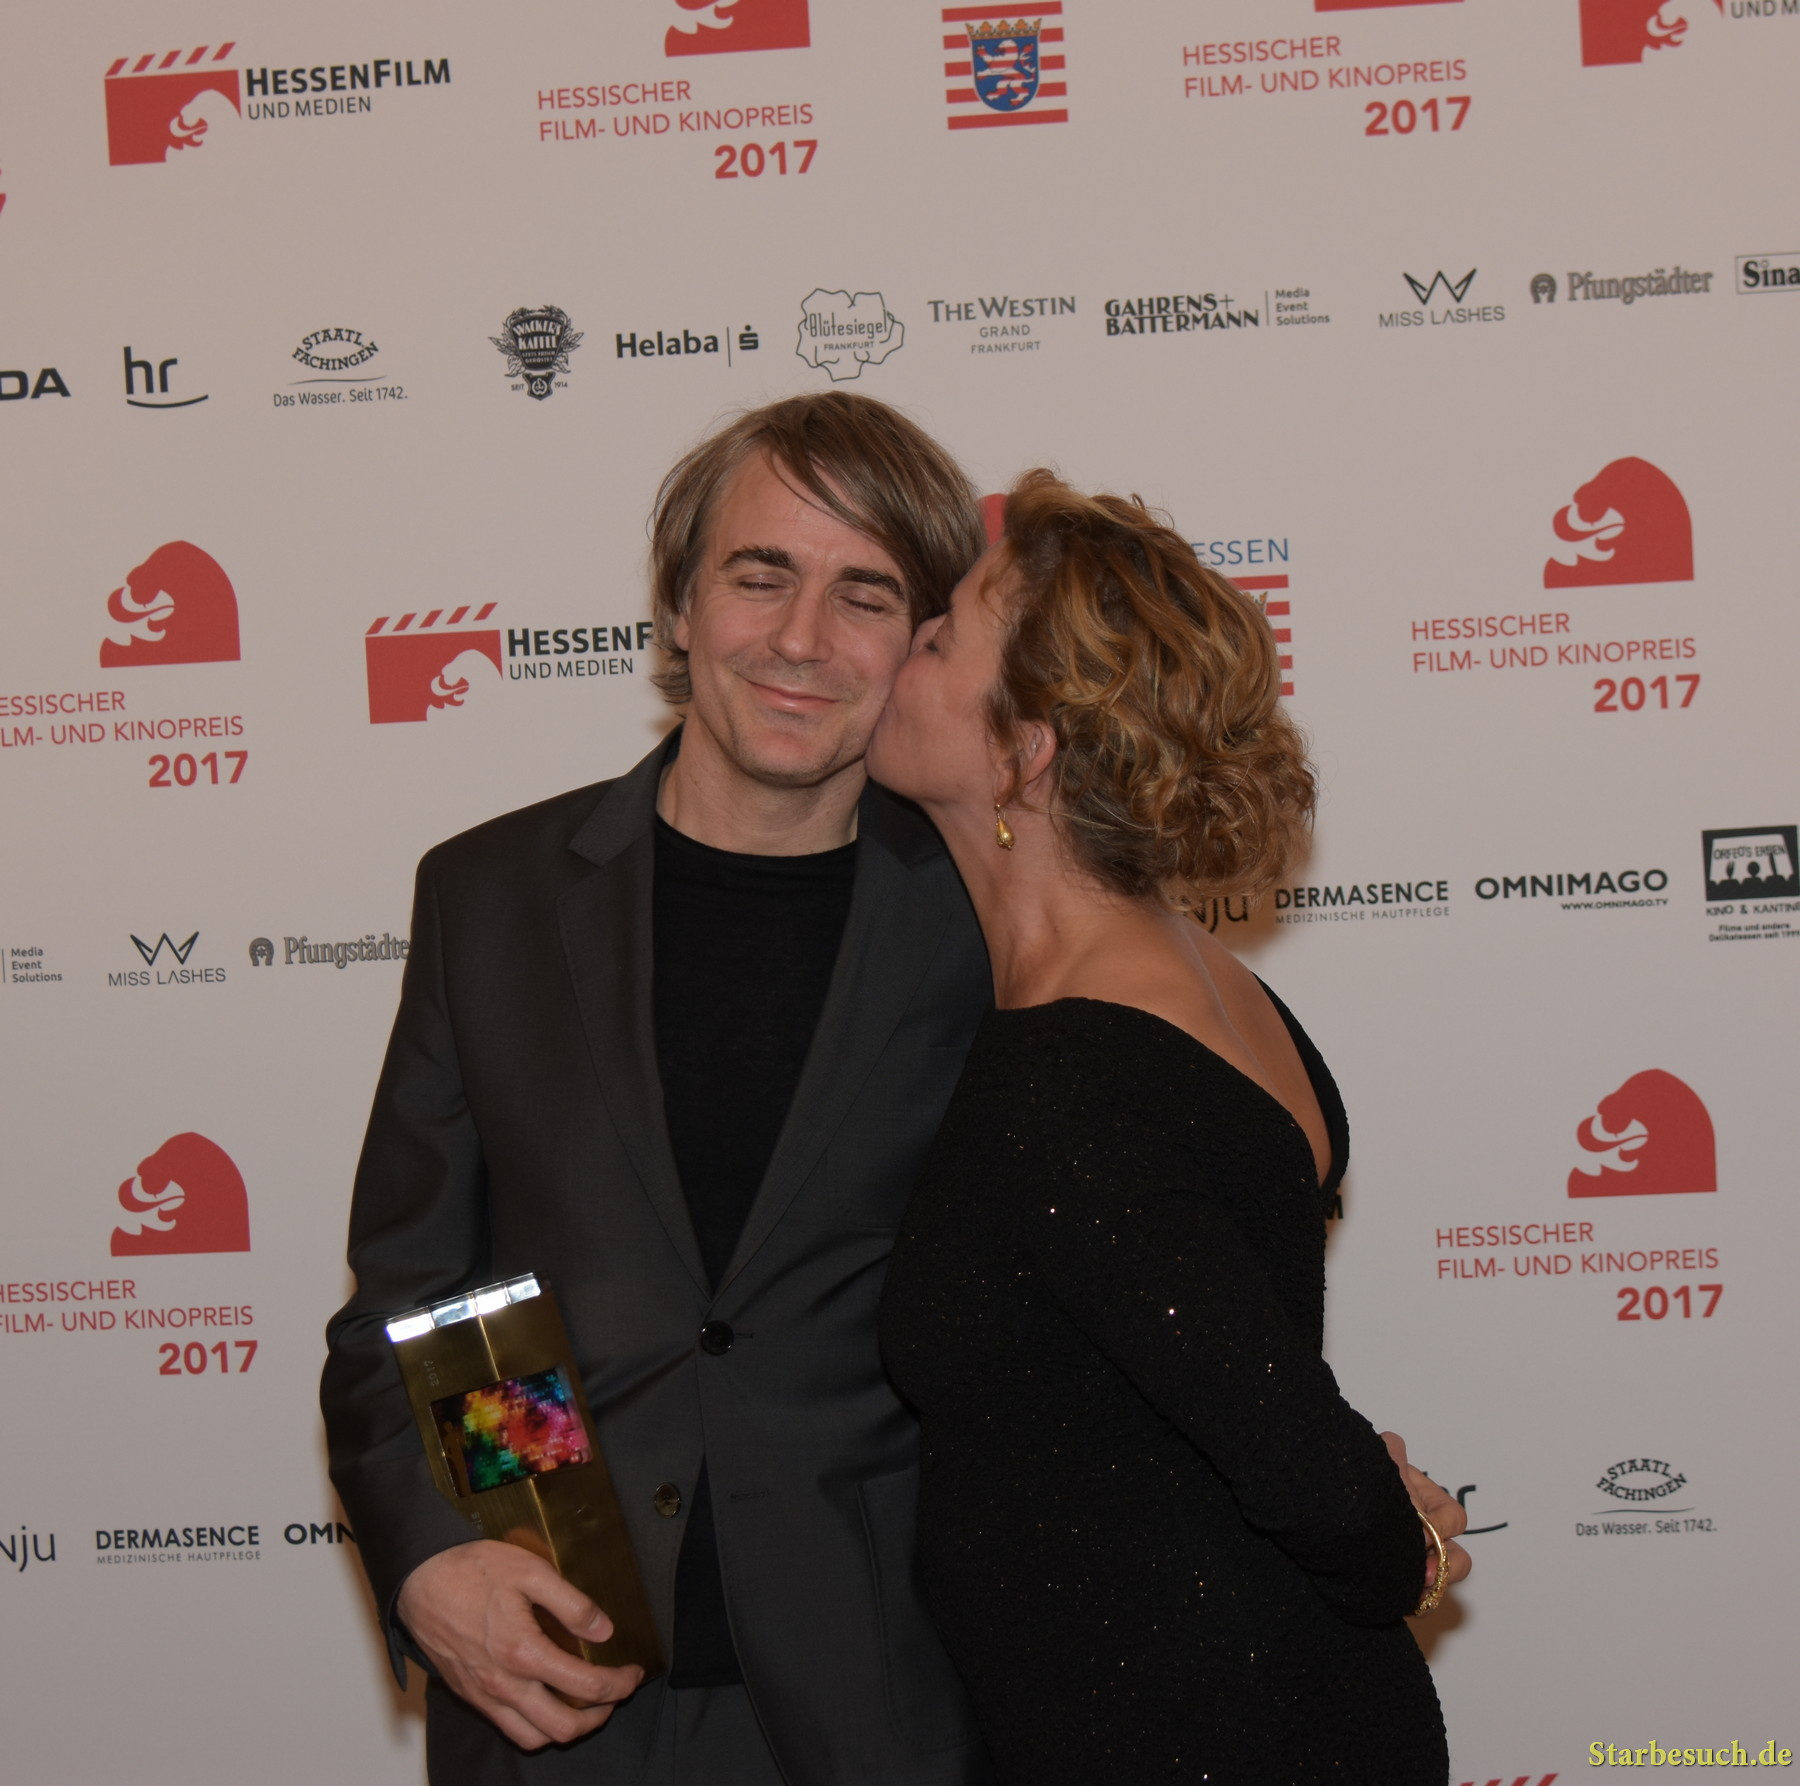 Jens Harzer (* 1972), won Best Actor. With  Margarita Broich at the Hessischer Film- und Kinopreis 2017, Alte Oper Frankfurt/Main, Germany